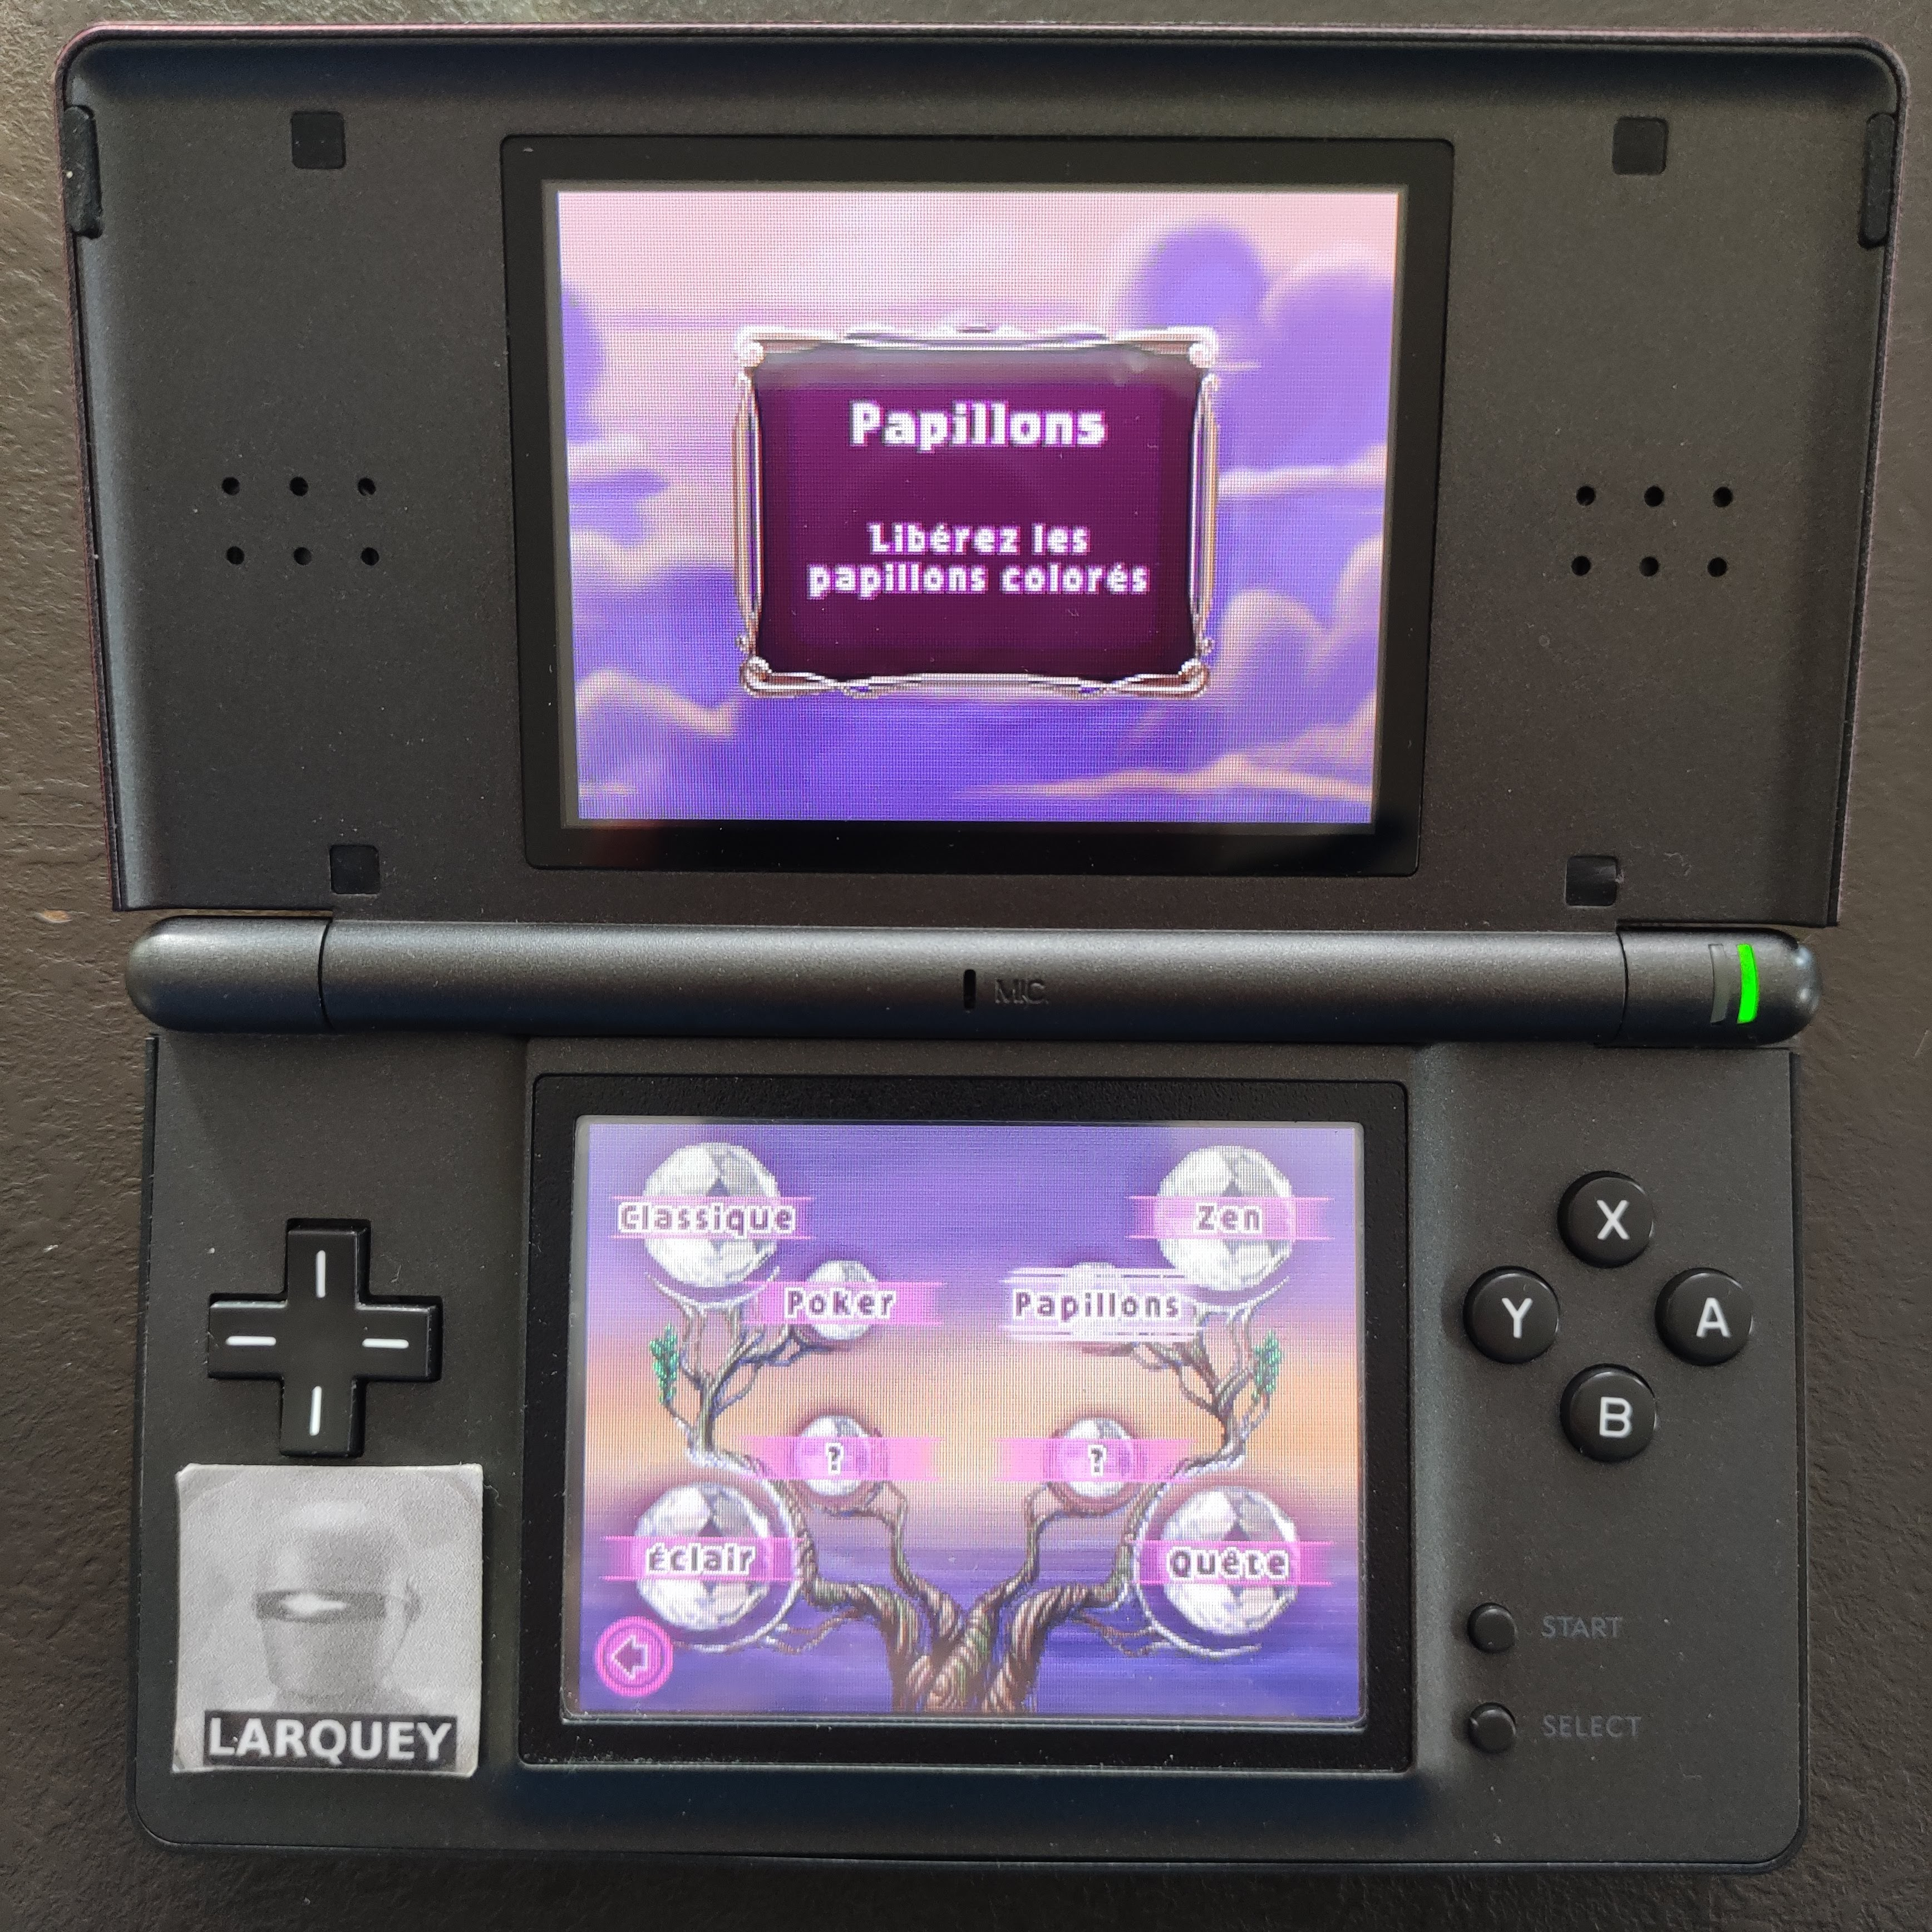 Larquey: Bejeweled 3: Butterflies [Number of Flame Gems] (Nintendo DS) 5 points on 2020-09-27 04:01:33